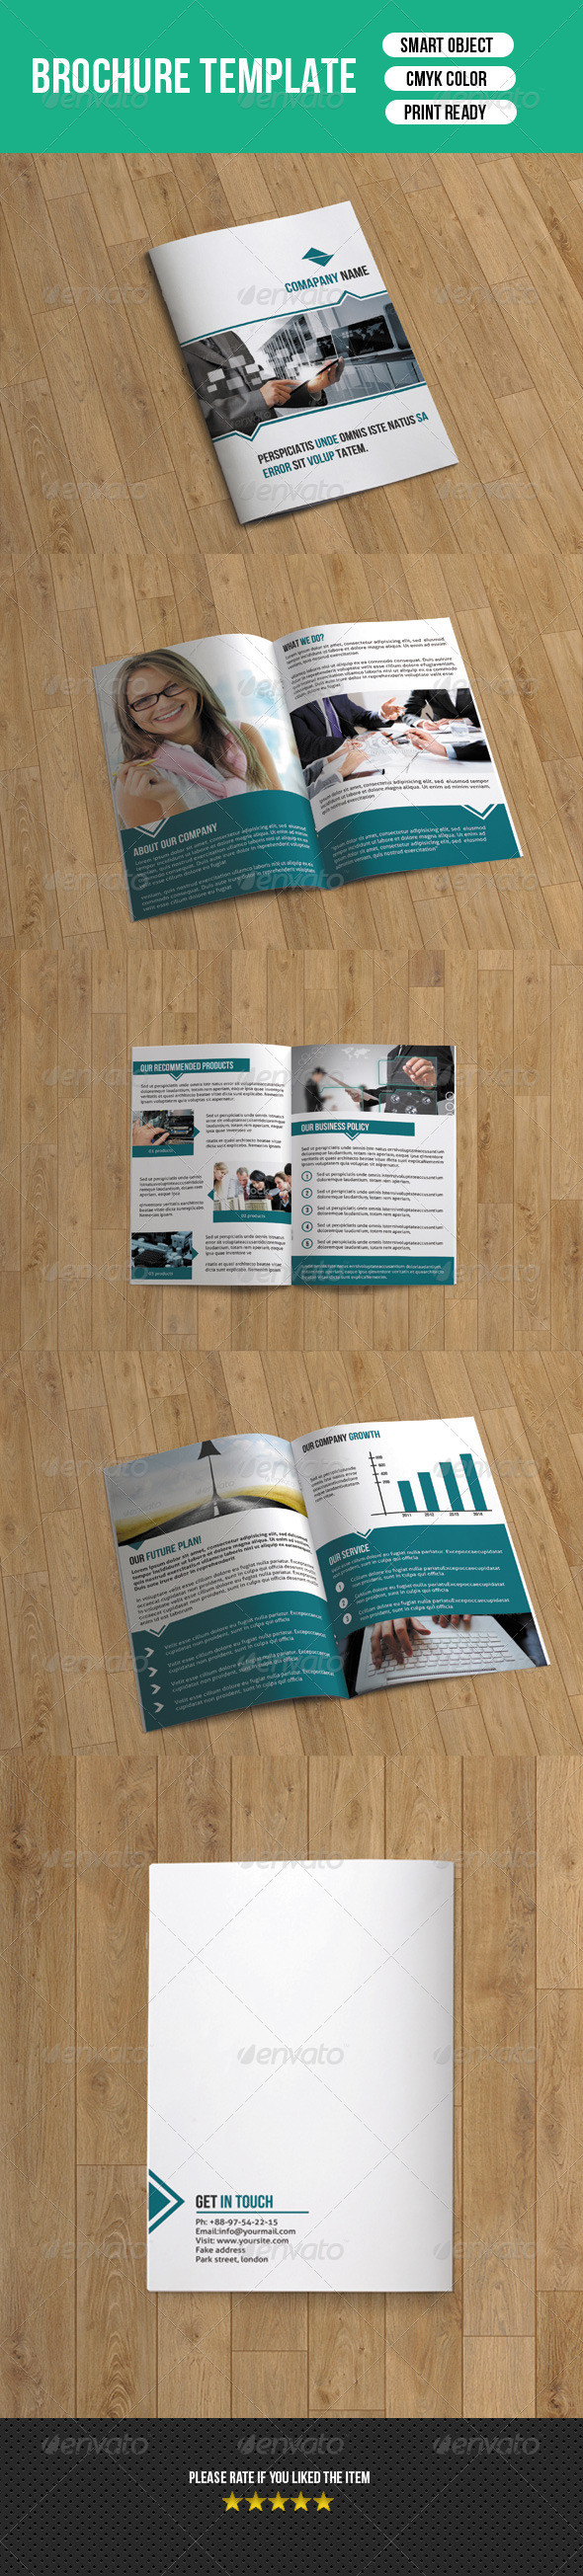 GraphicRiver 8 Page Business Brochure-V12 7794743